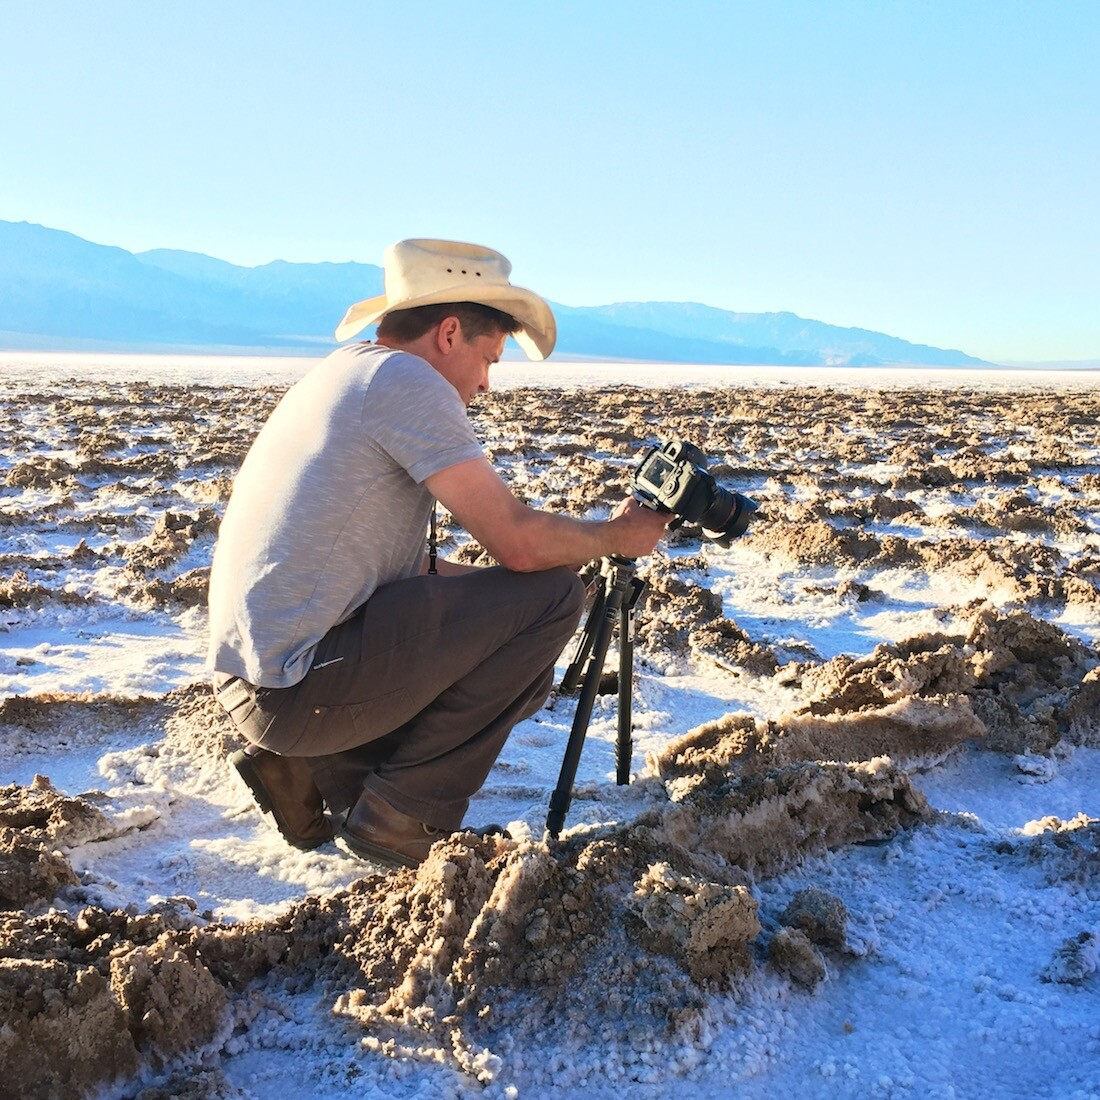 Osceola Refetoff Photographs Salt Formations at Badwater Basin | Photo: Christopher Langley